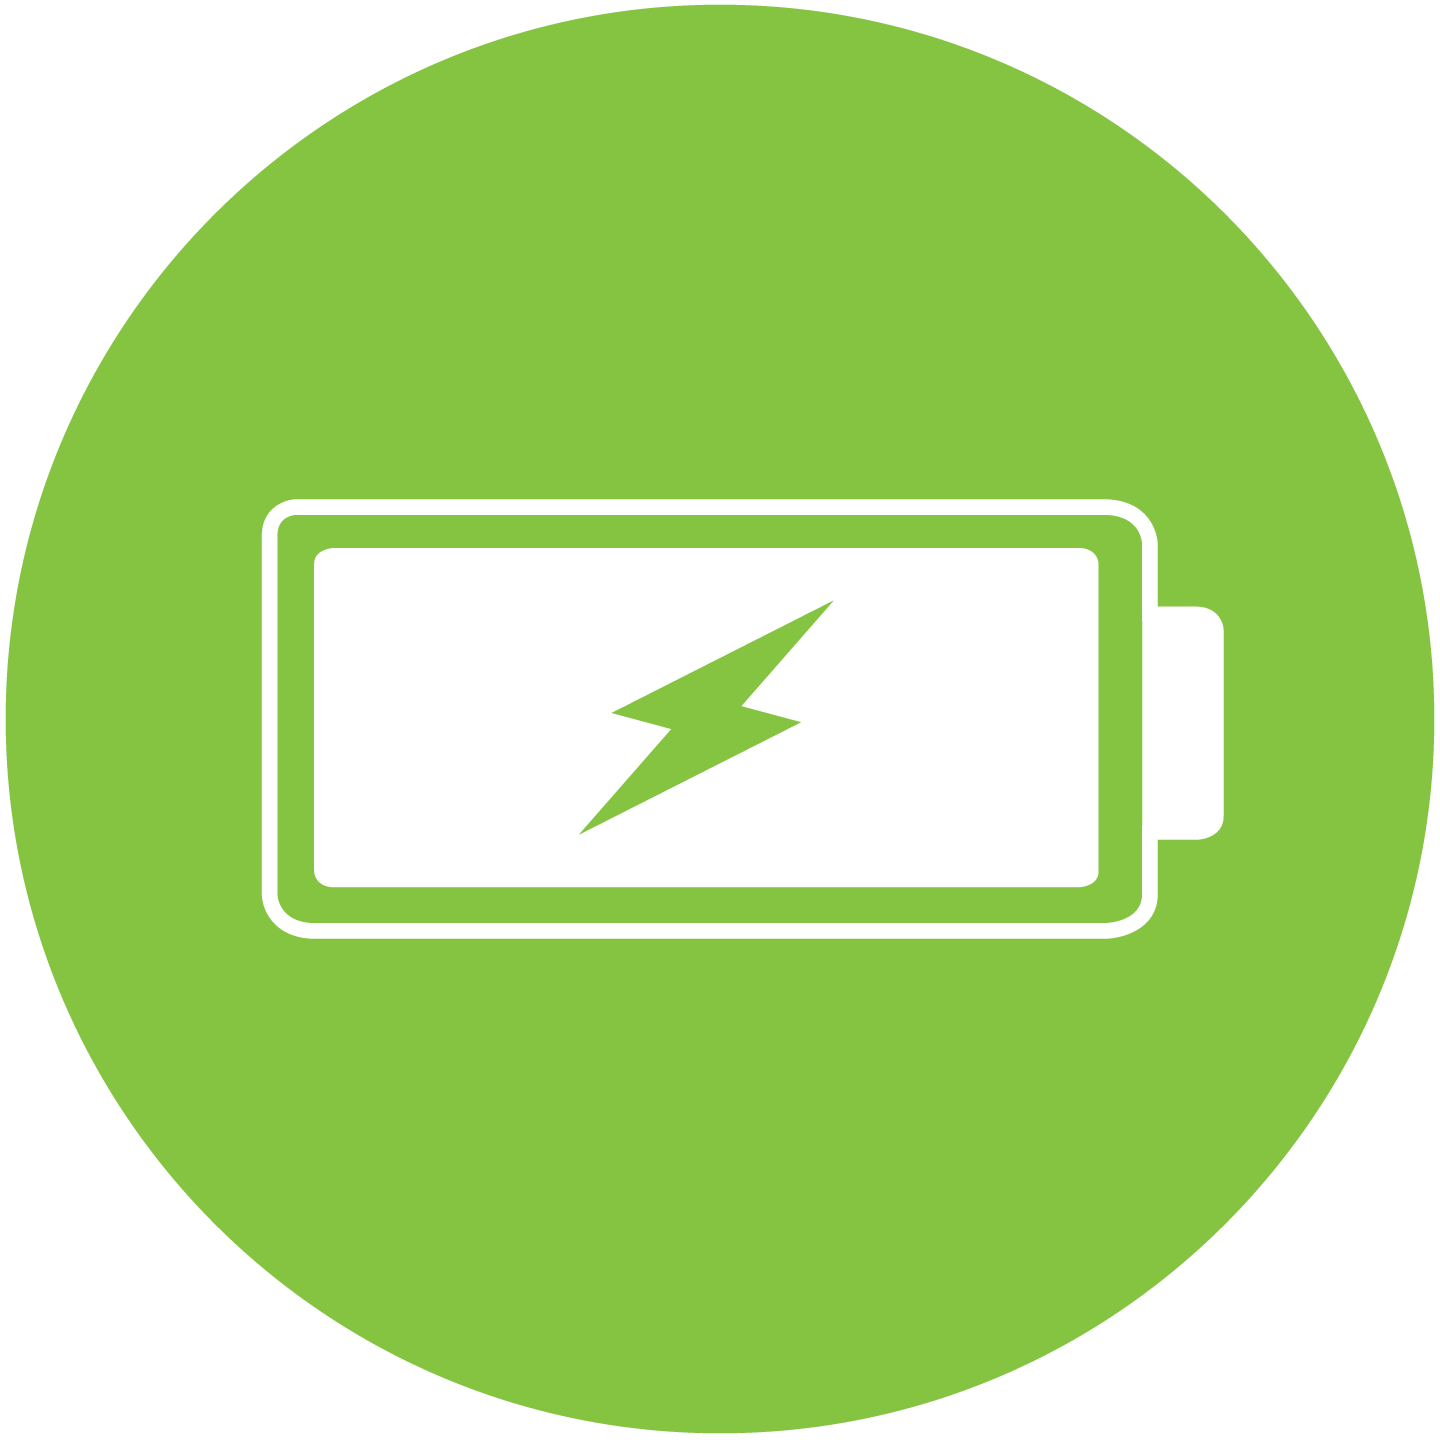 ps-plus-icon-chargebattery